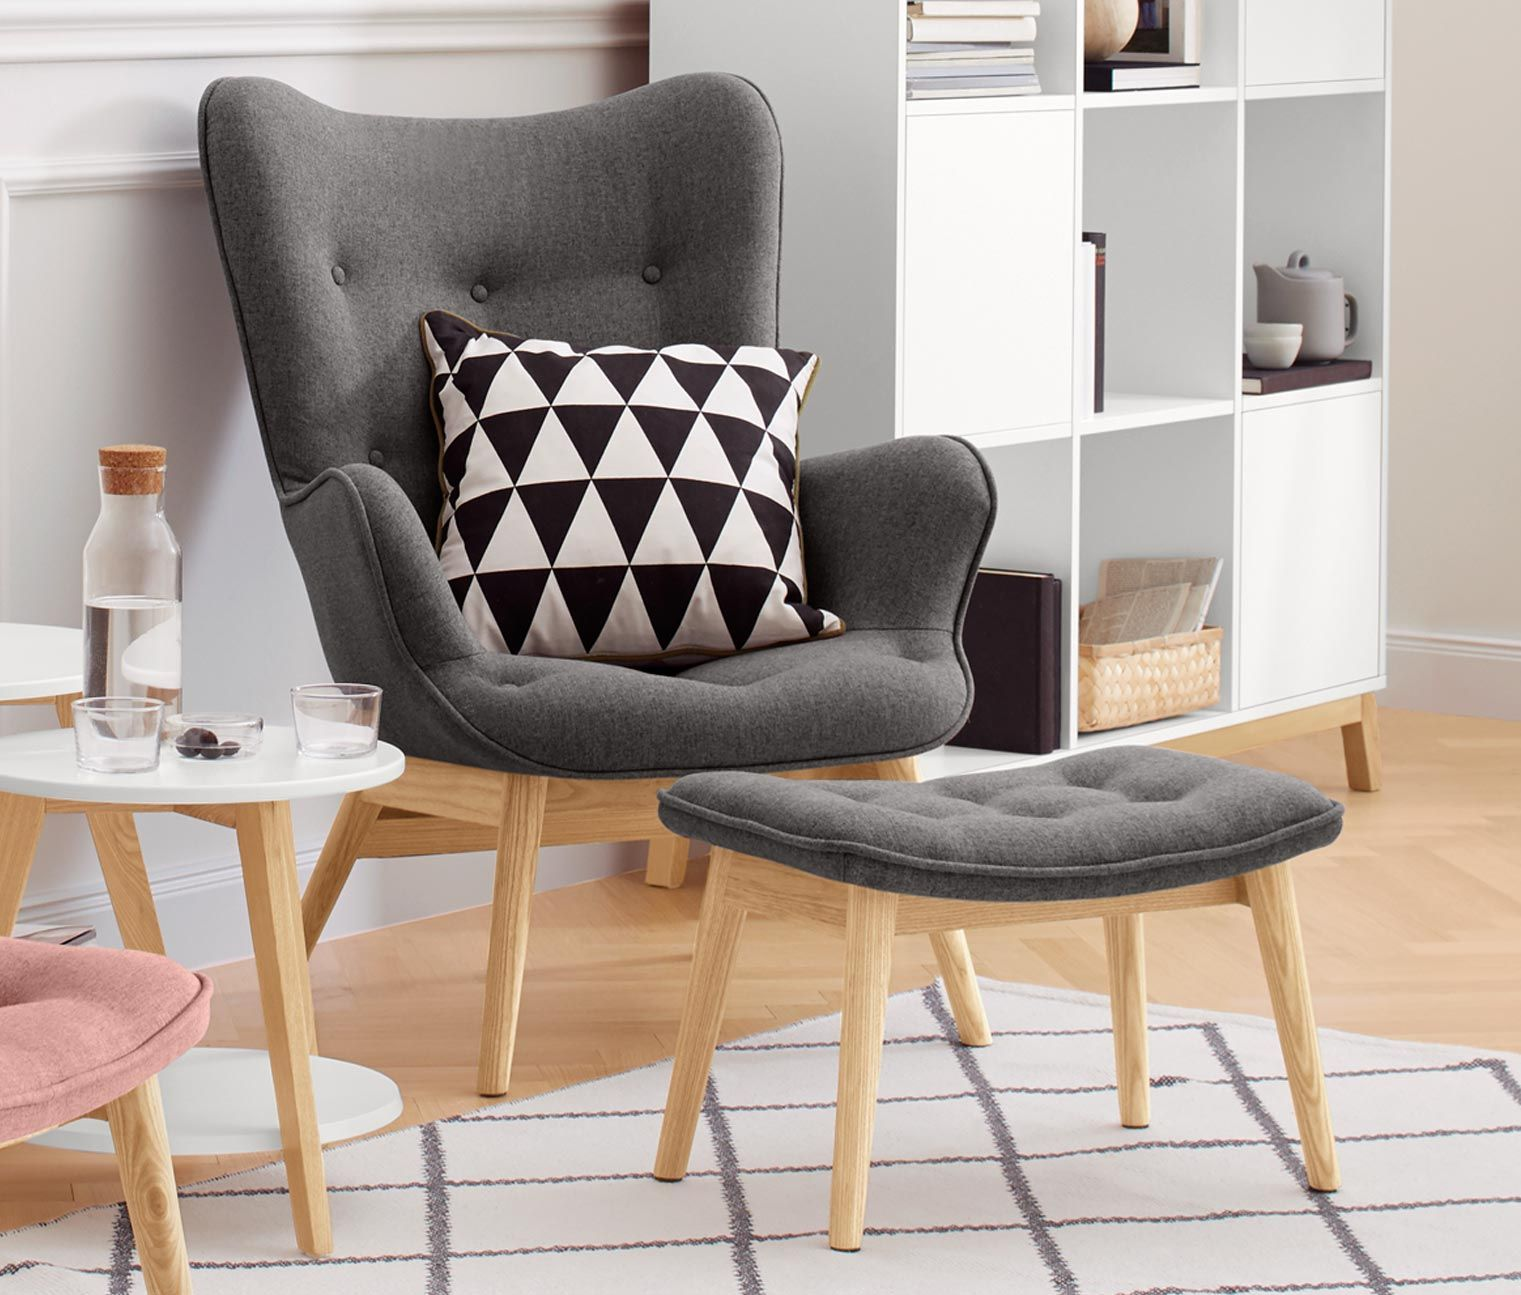 Ekenäset Sessel Grau Sessel Garbo I Webstoff Furniture Stuff T Living Room